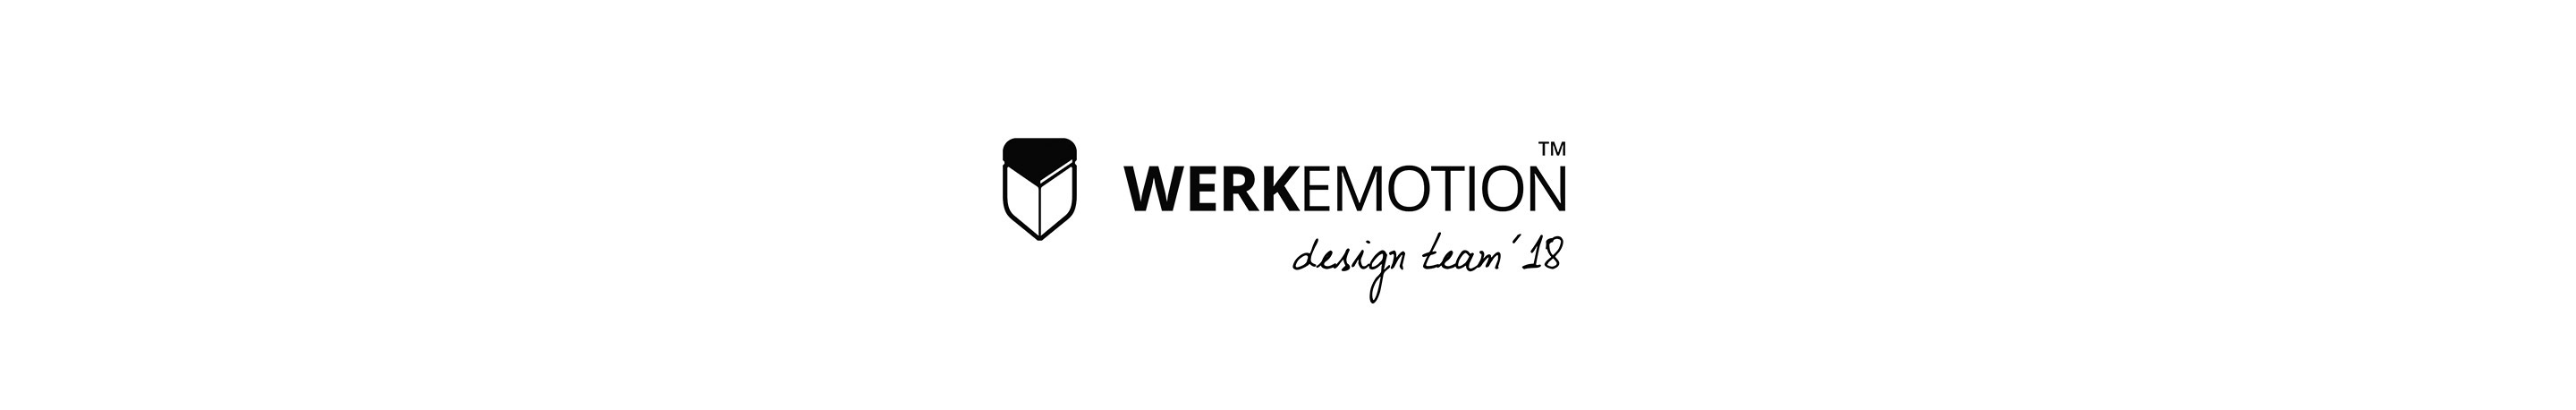 werkemotion-design-team